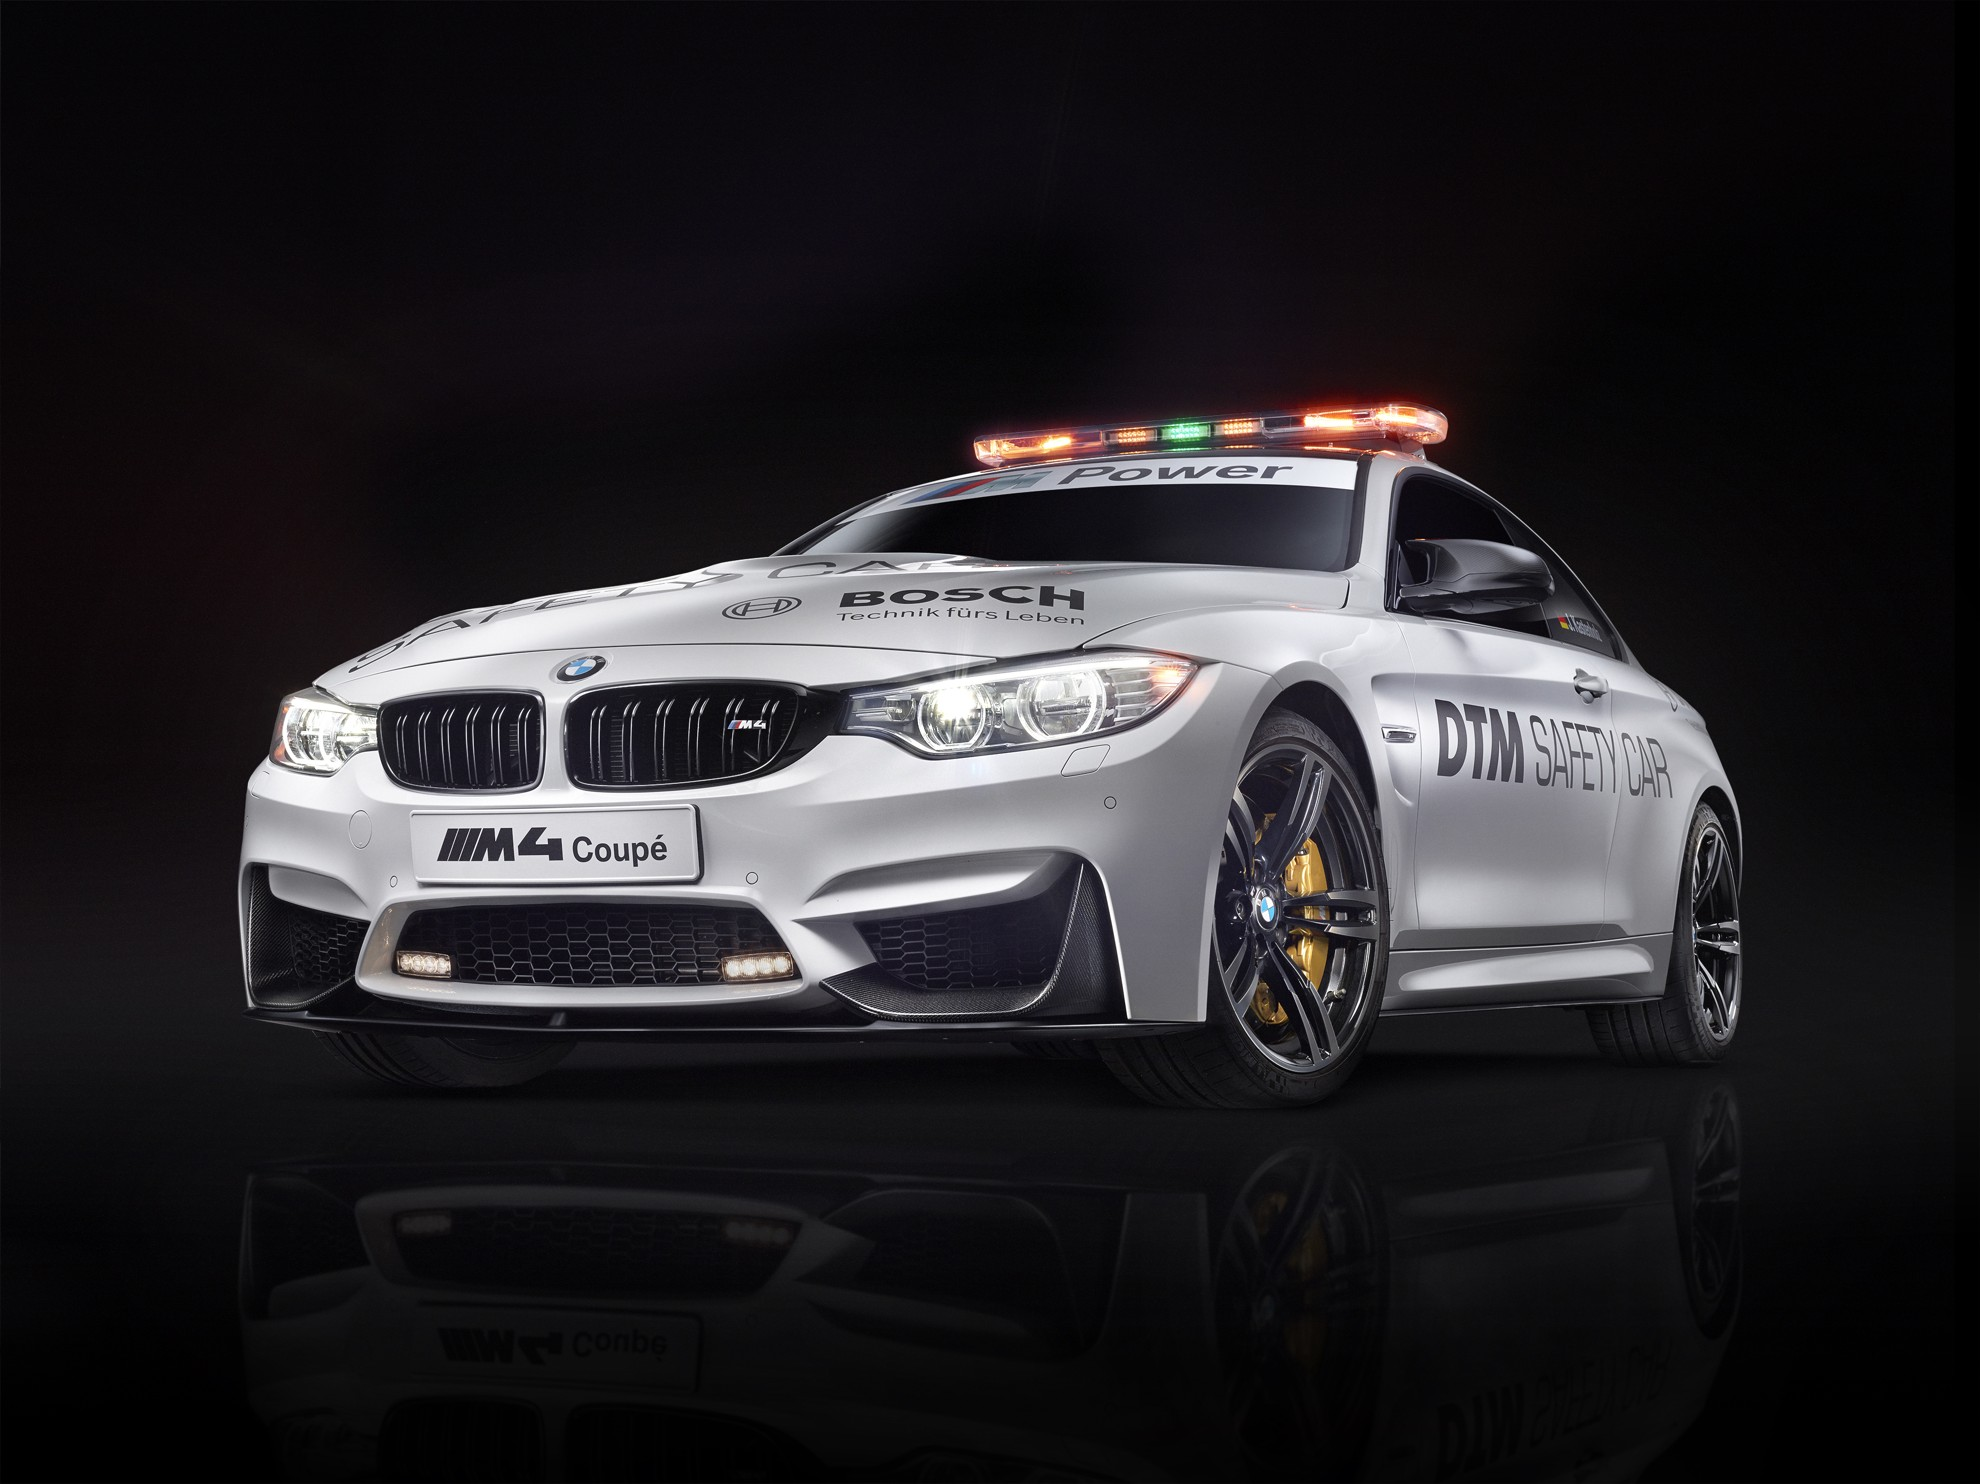 BMW_M4_Coupe_DTM_Safety_Car